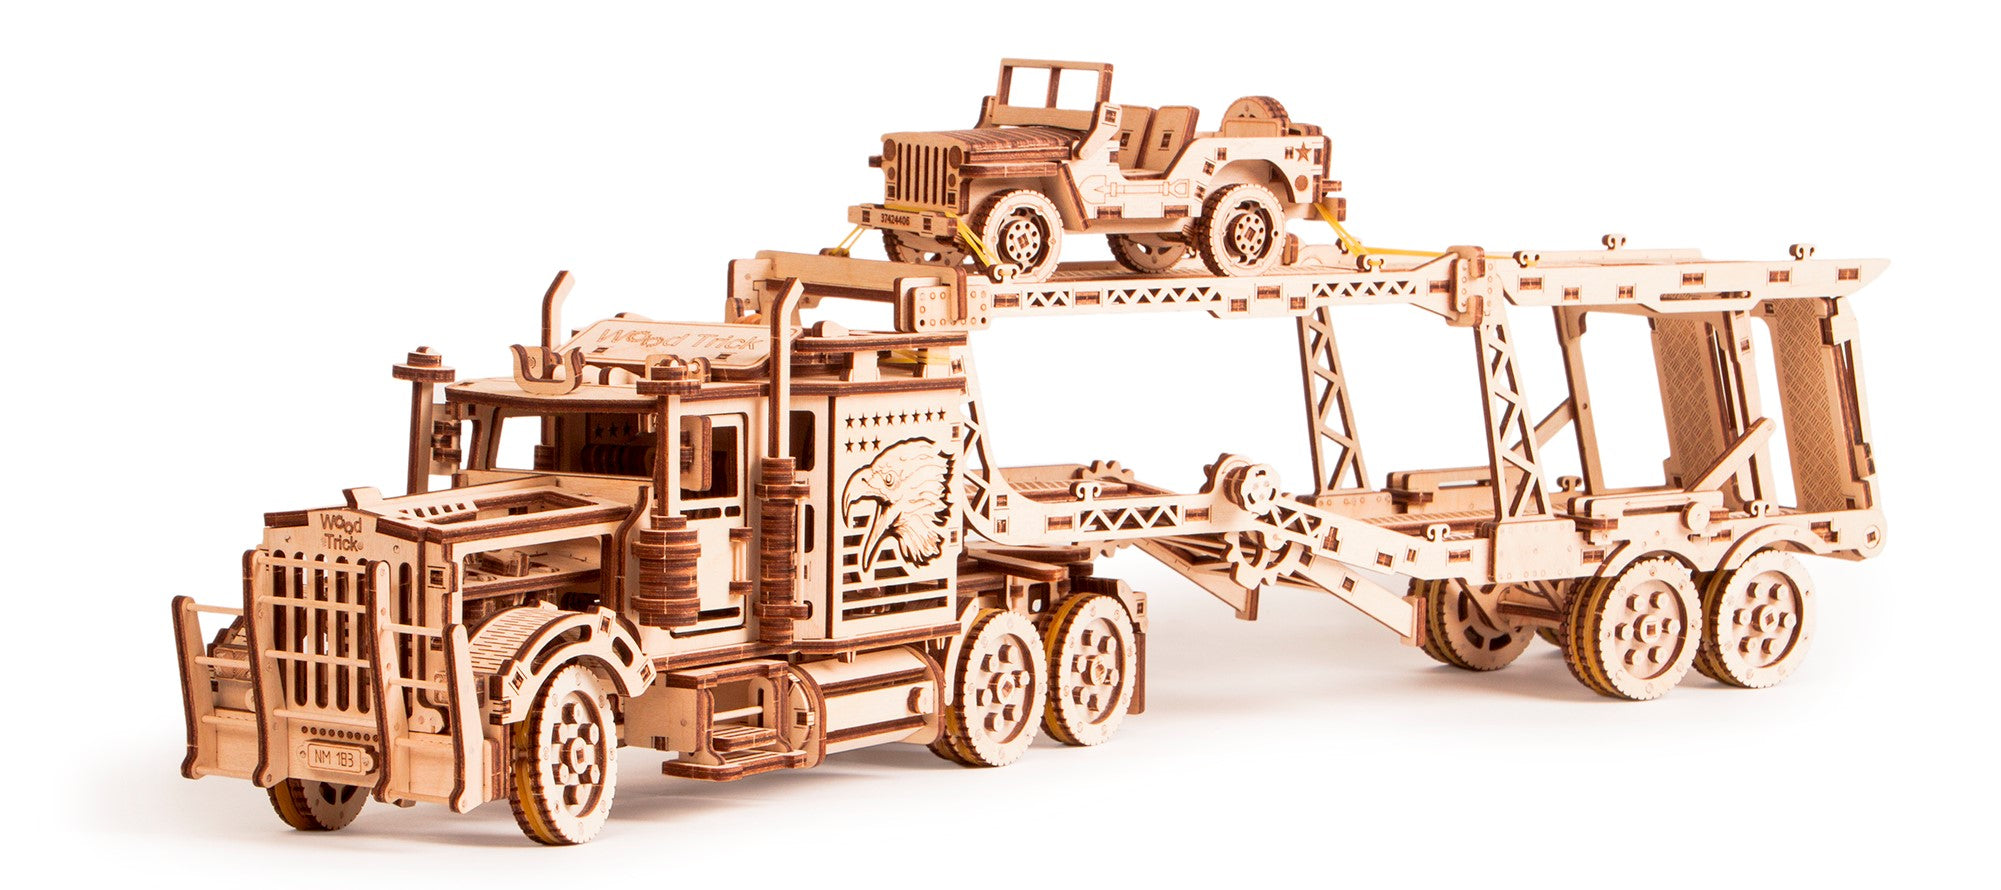 Wooden mechanical model, 3D puzzle, for children and adults. Perfect gift for him. Learning game, Educational toy, Wooden toys